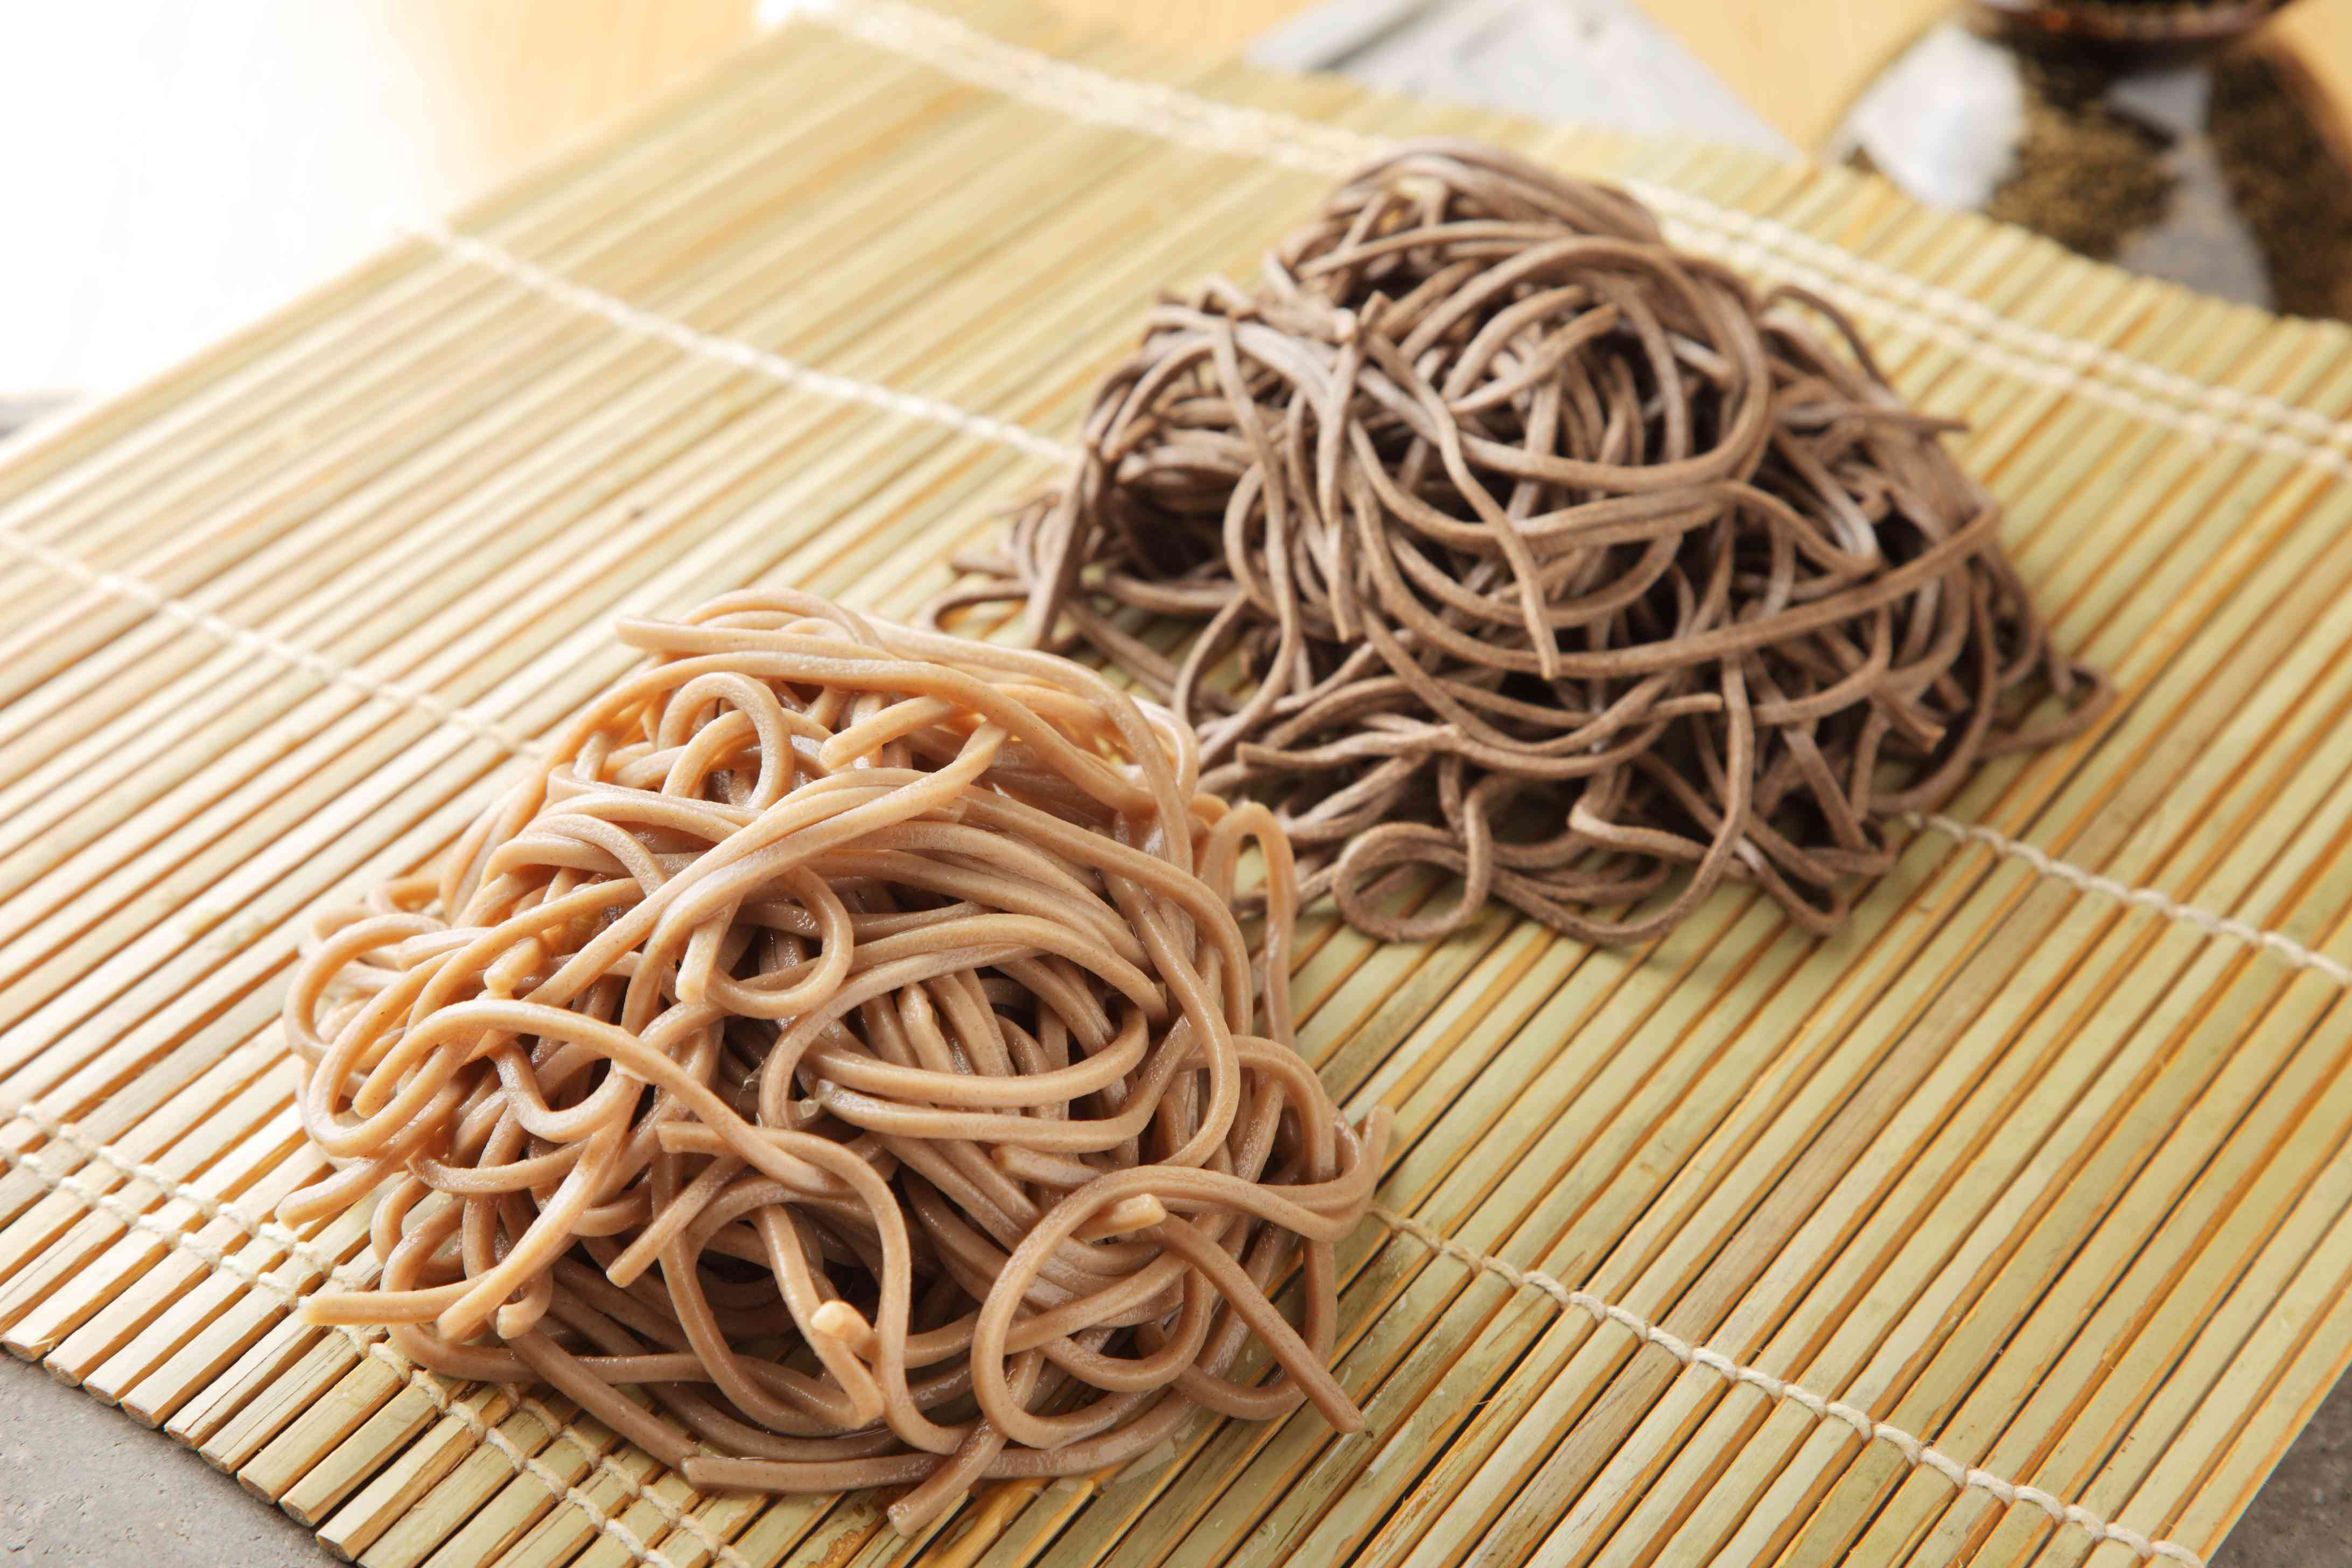 Japanese raw dried udon noodle on bamboo tray in restaurant